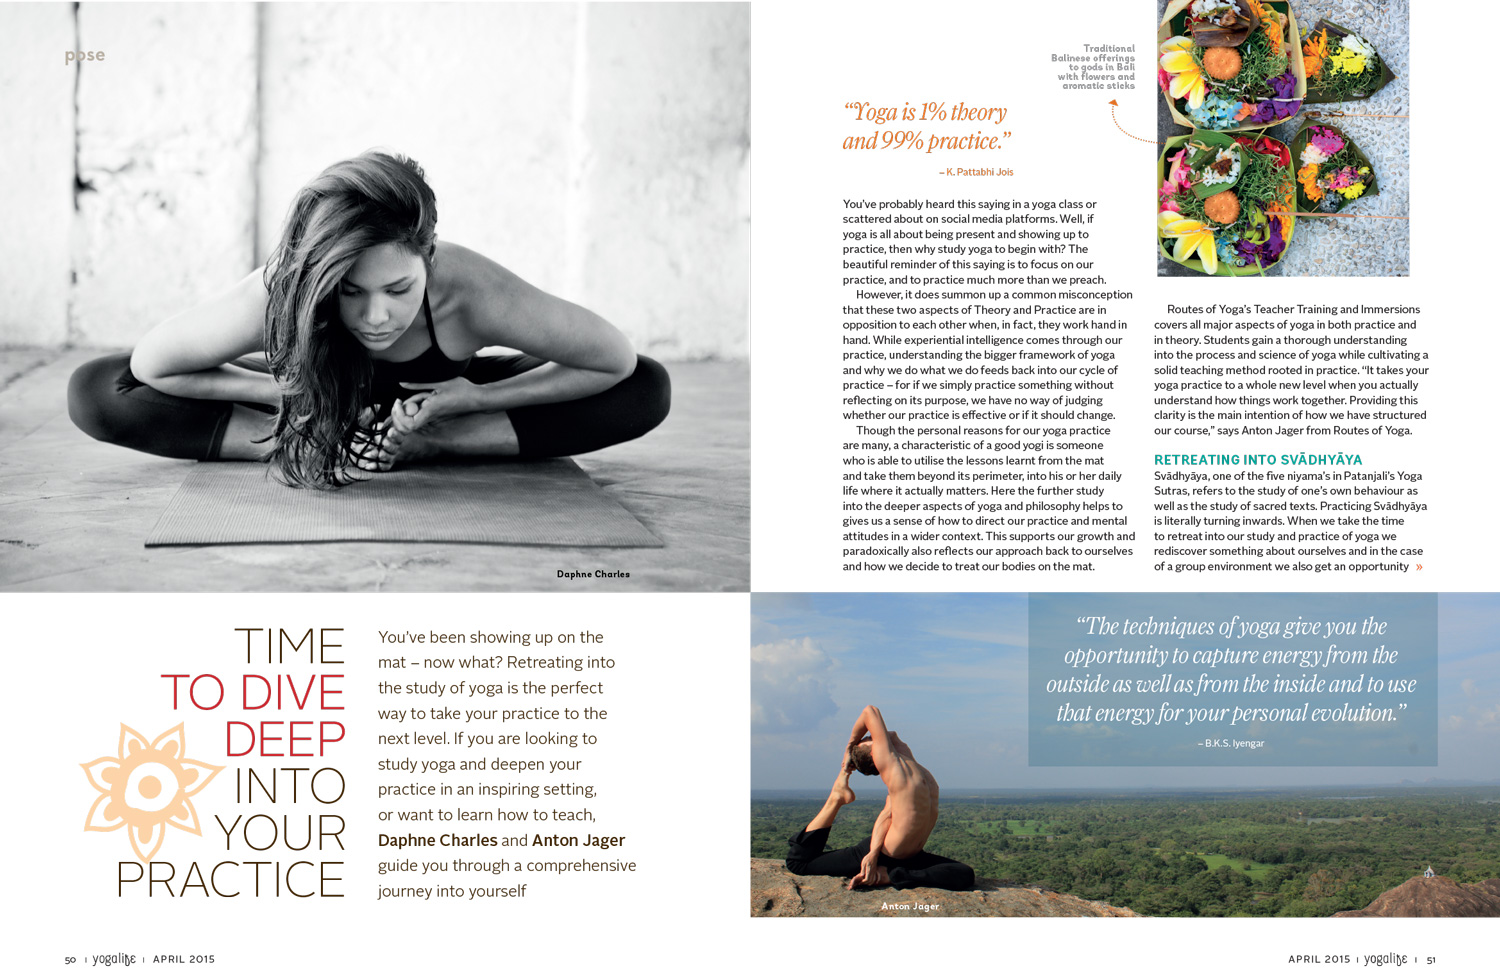 YogaLife April 2015 Routes of Yoga Feature 1